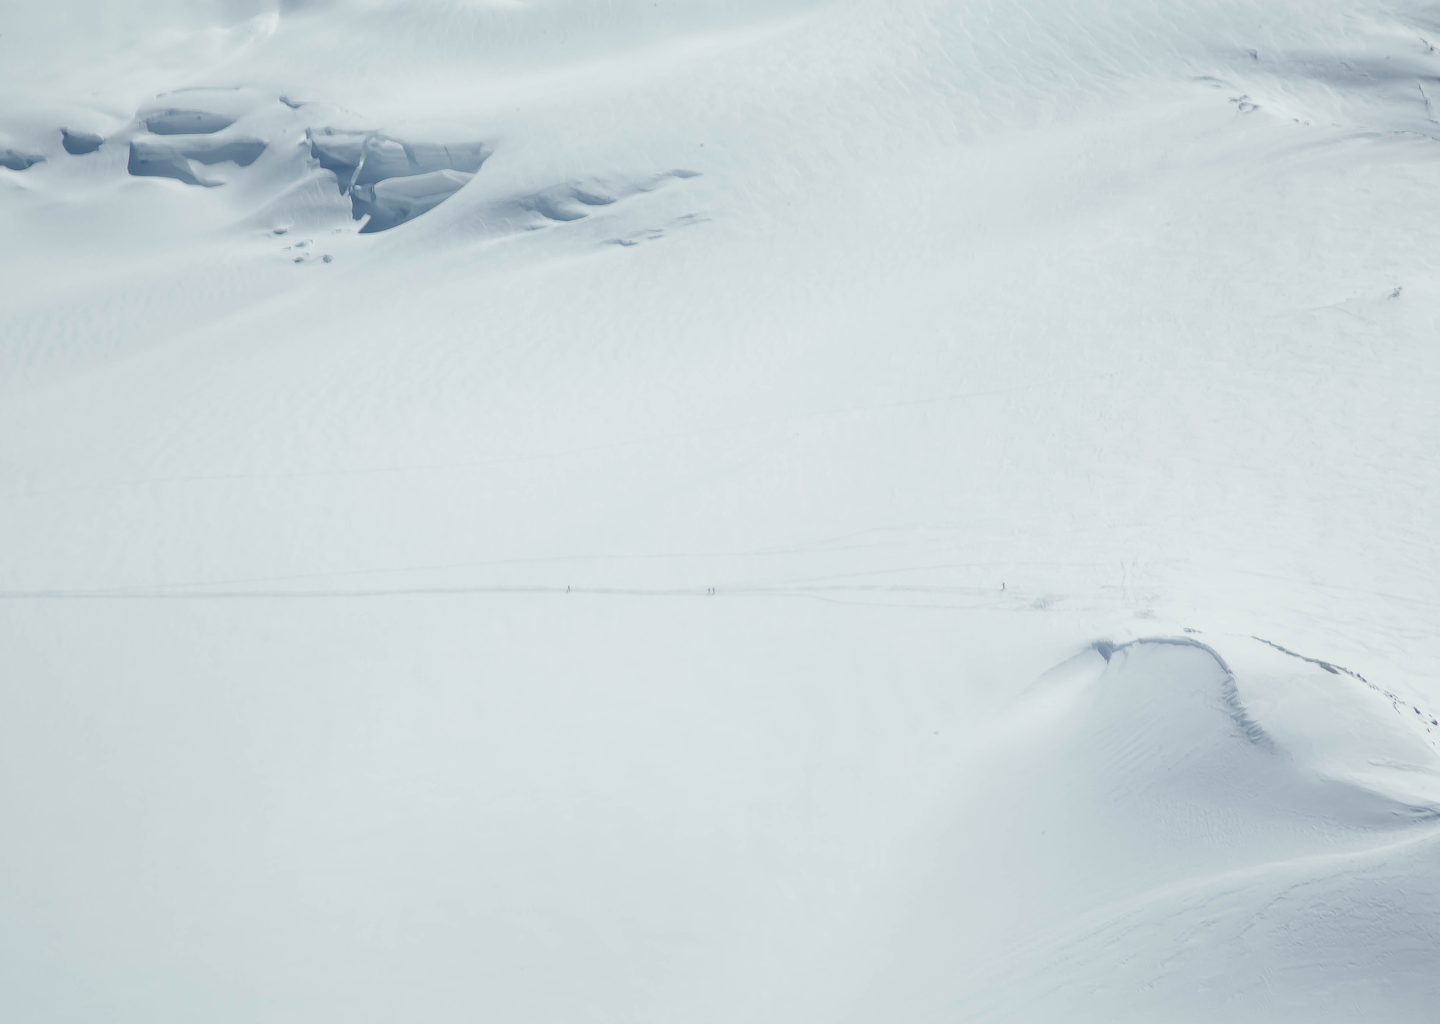 Skiers traversing across a snowy mountain in British Columbia Canada.